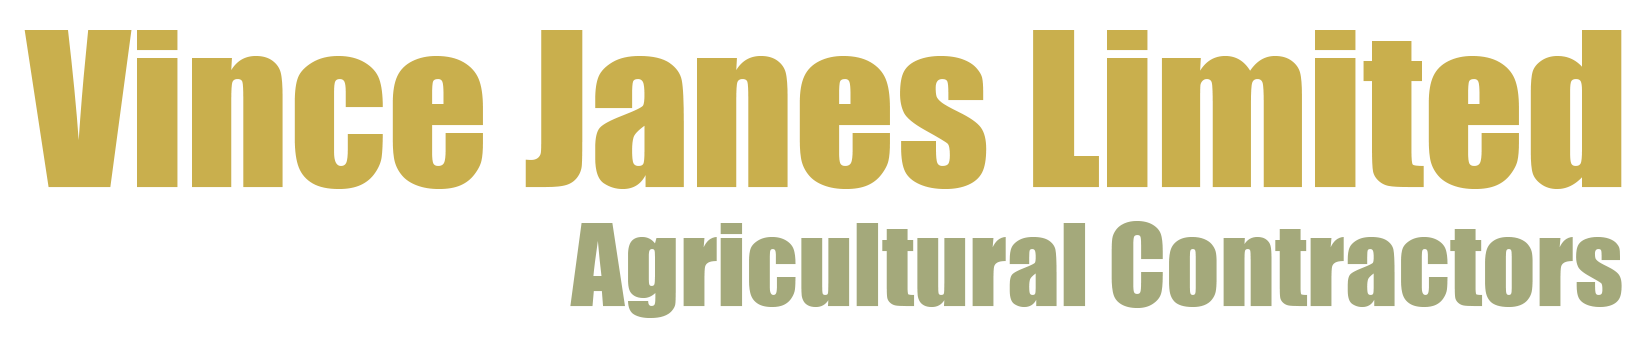 Vince Janes Limited - Agricultural Contractors